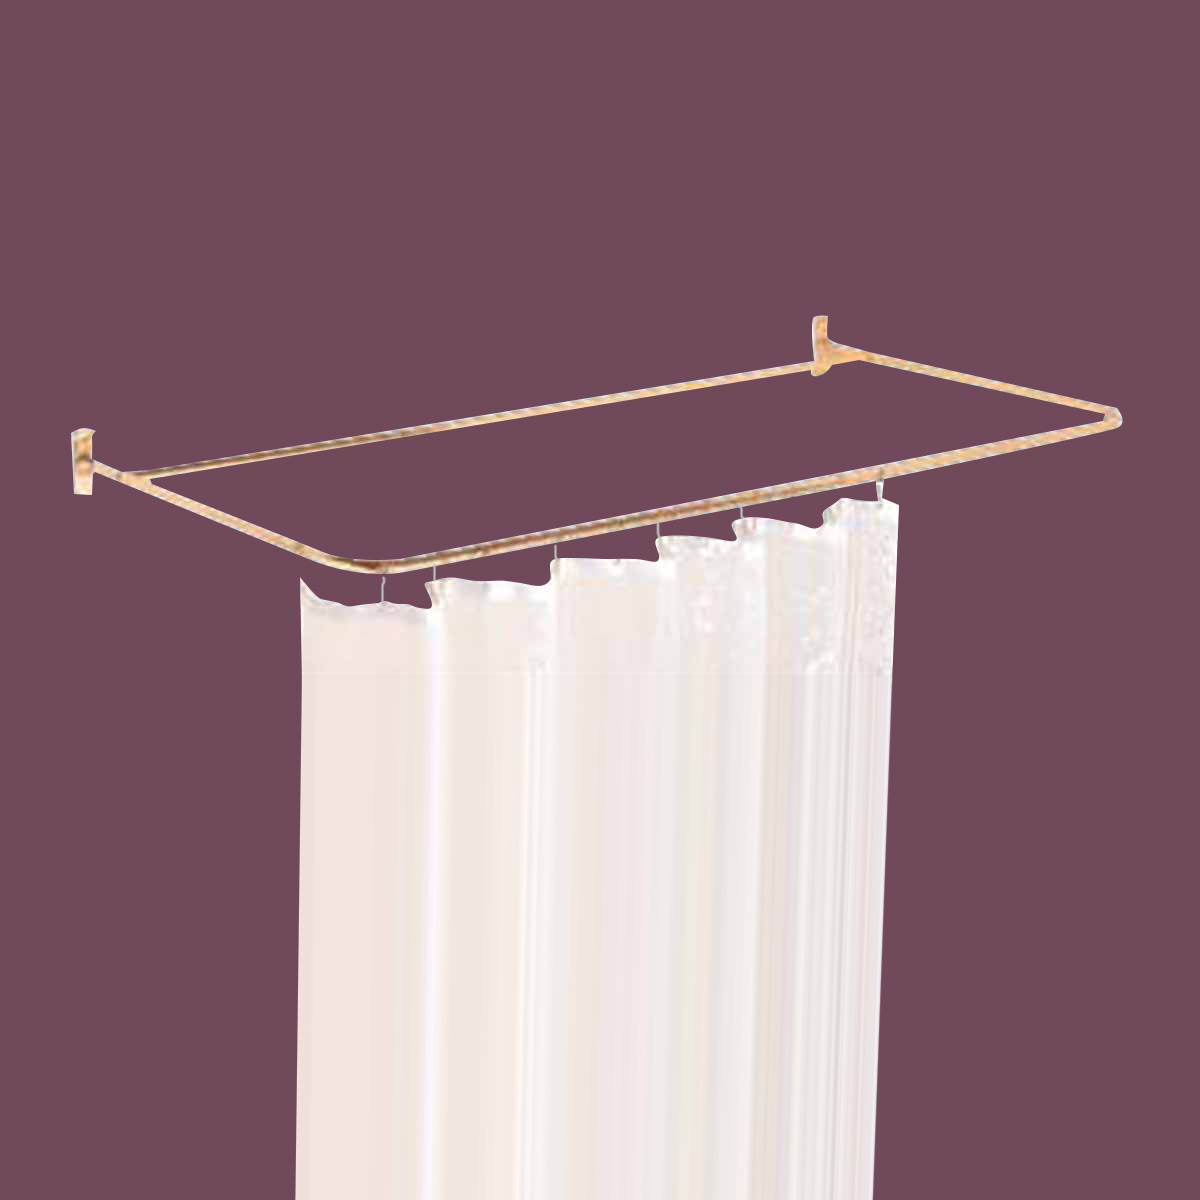 Shower Curtain Rod Bright Solid Brass 4 Sided